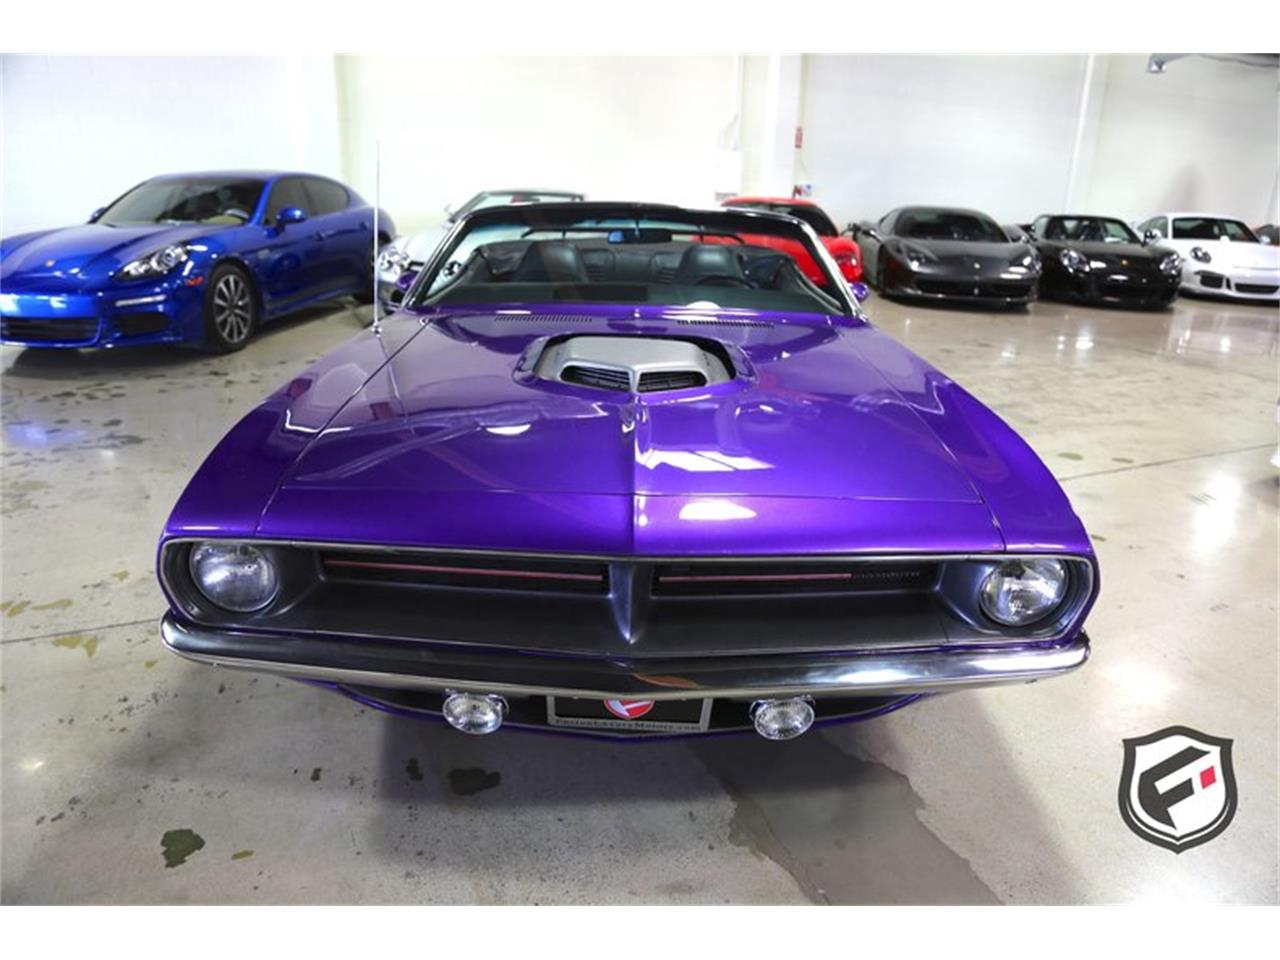 Large Picture of Classic '70 Plymouth Hemi 'Cuda Convertible located in California Offered by Fusion Luxury Motors - LFH0